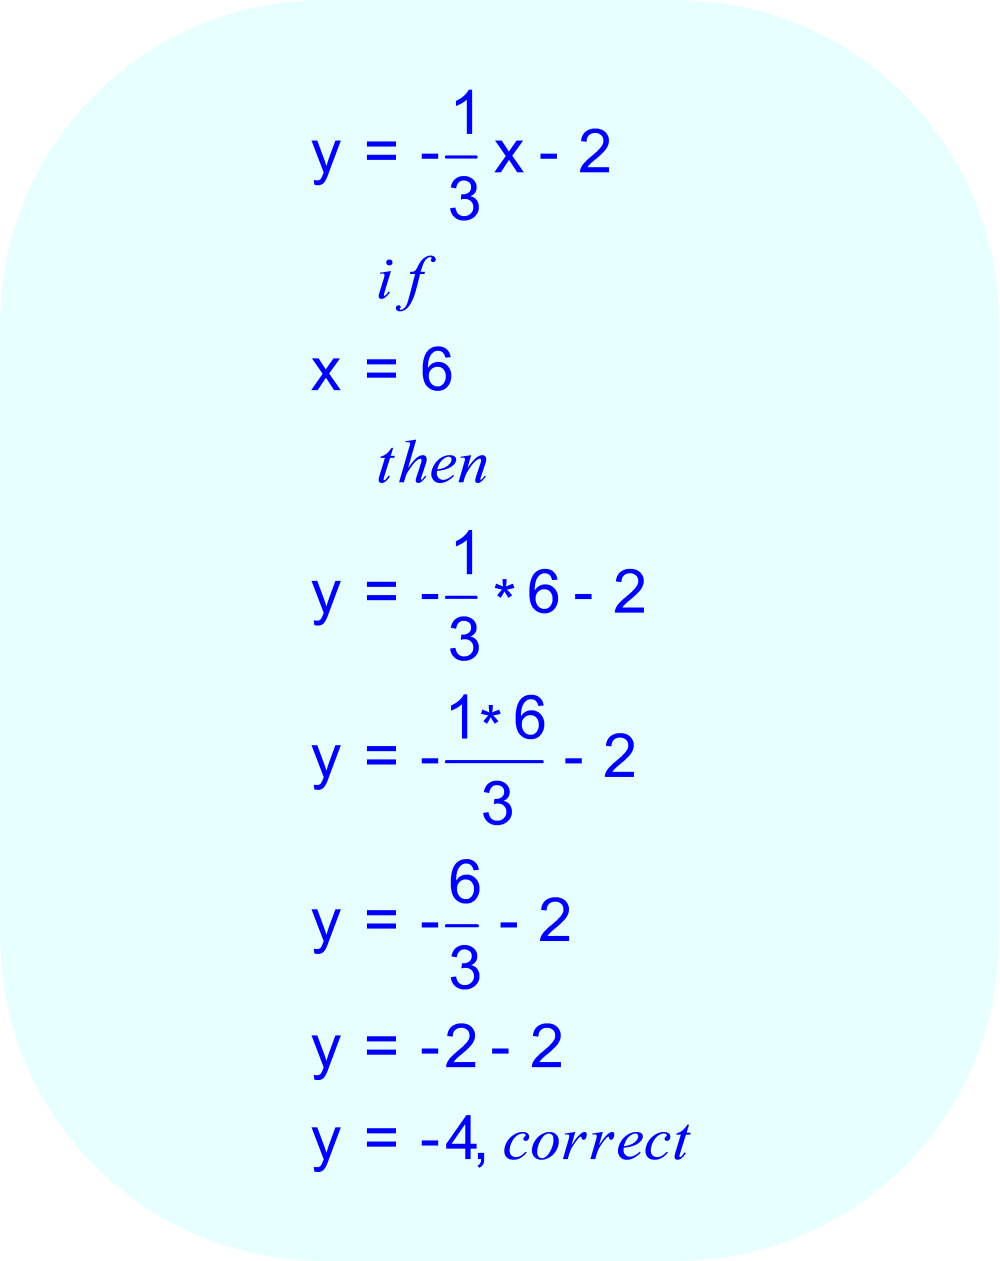 Since the straight line passes through the point (6, -4), when x = 6 the equation should compute -4 for y.